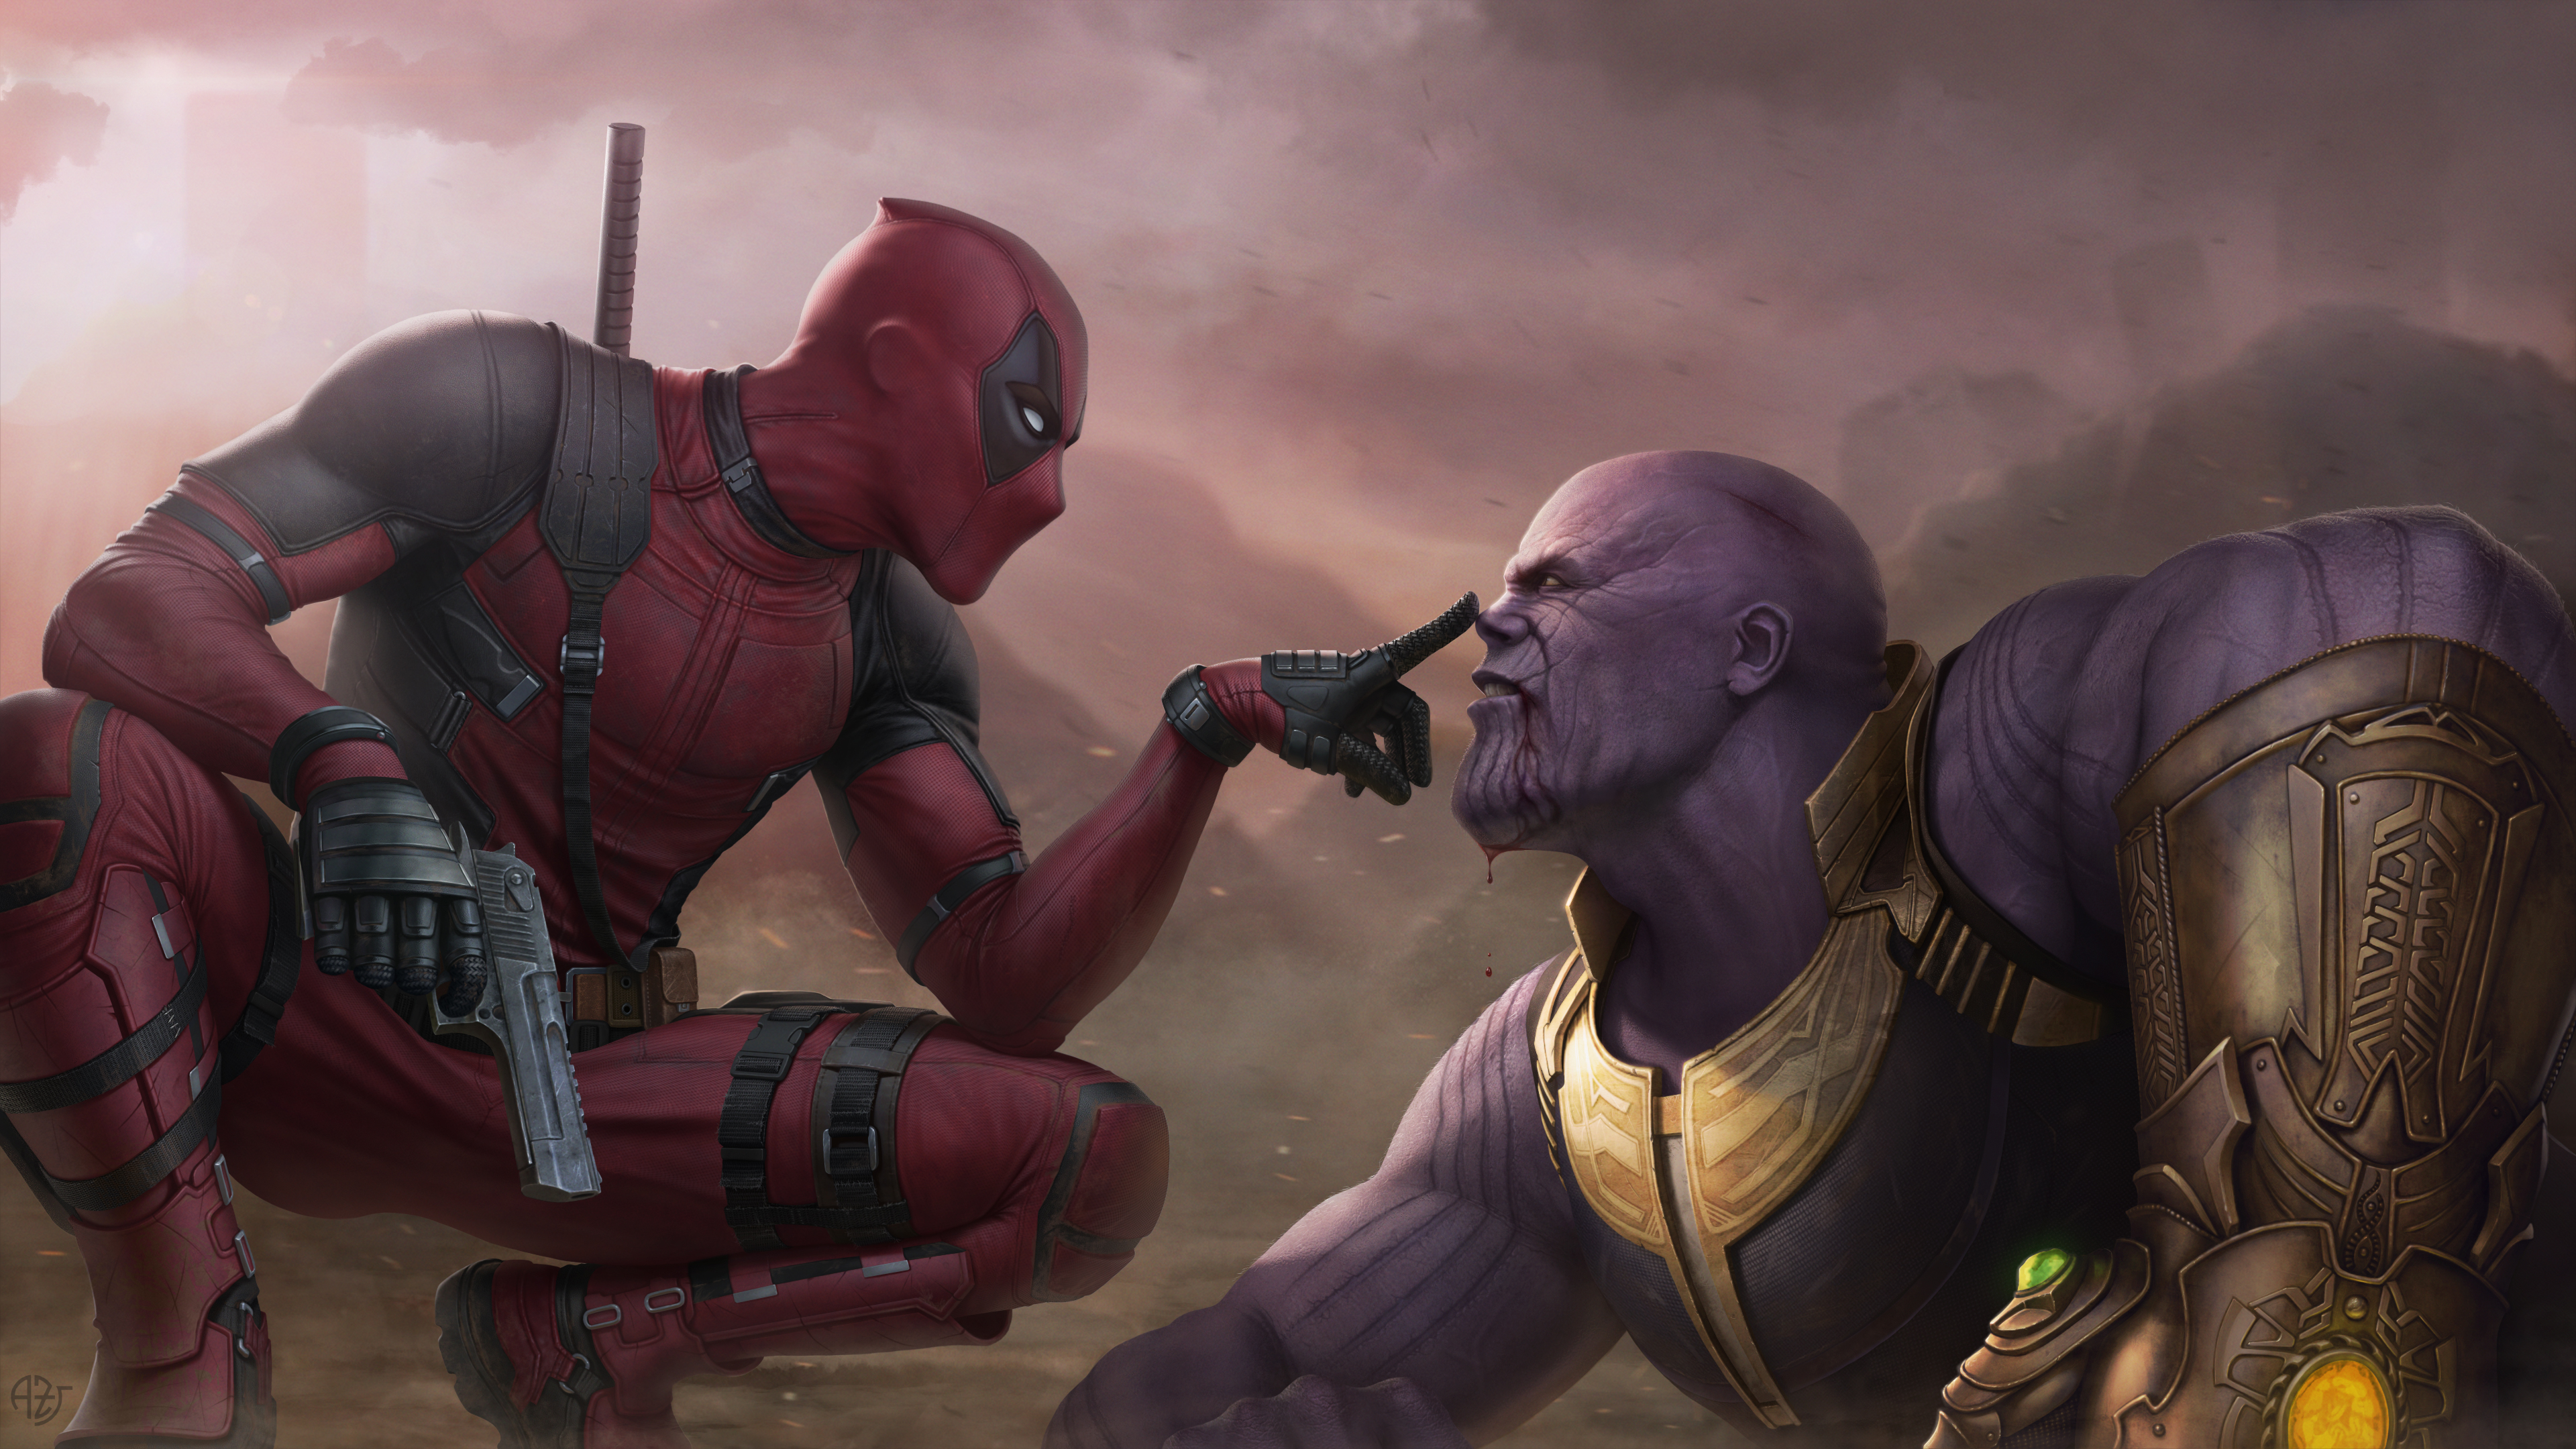 deadpool vs thanos 4k 1538786550 - Deadpool Vs Thanos 4k - thanos-wallpapers, supervillain wallpapers, superheroes wallpapers, hd-wallpapers, digital art wallpapers, deadpool wallpapers, artwork wallpapers, artstation wallpapers, 4k-wallpapers